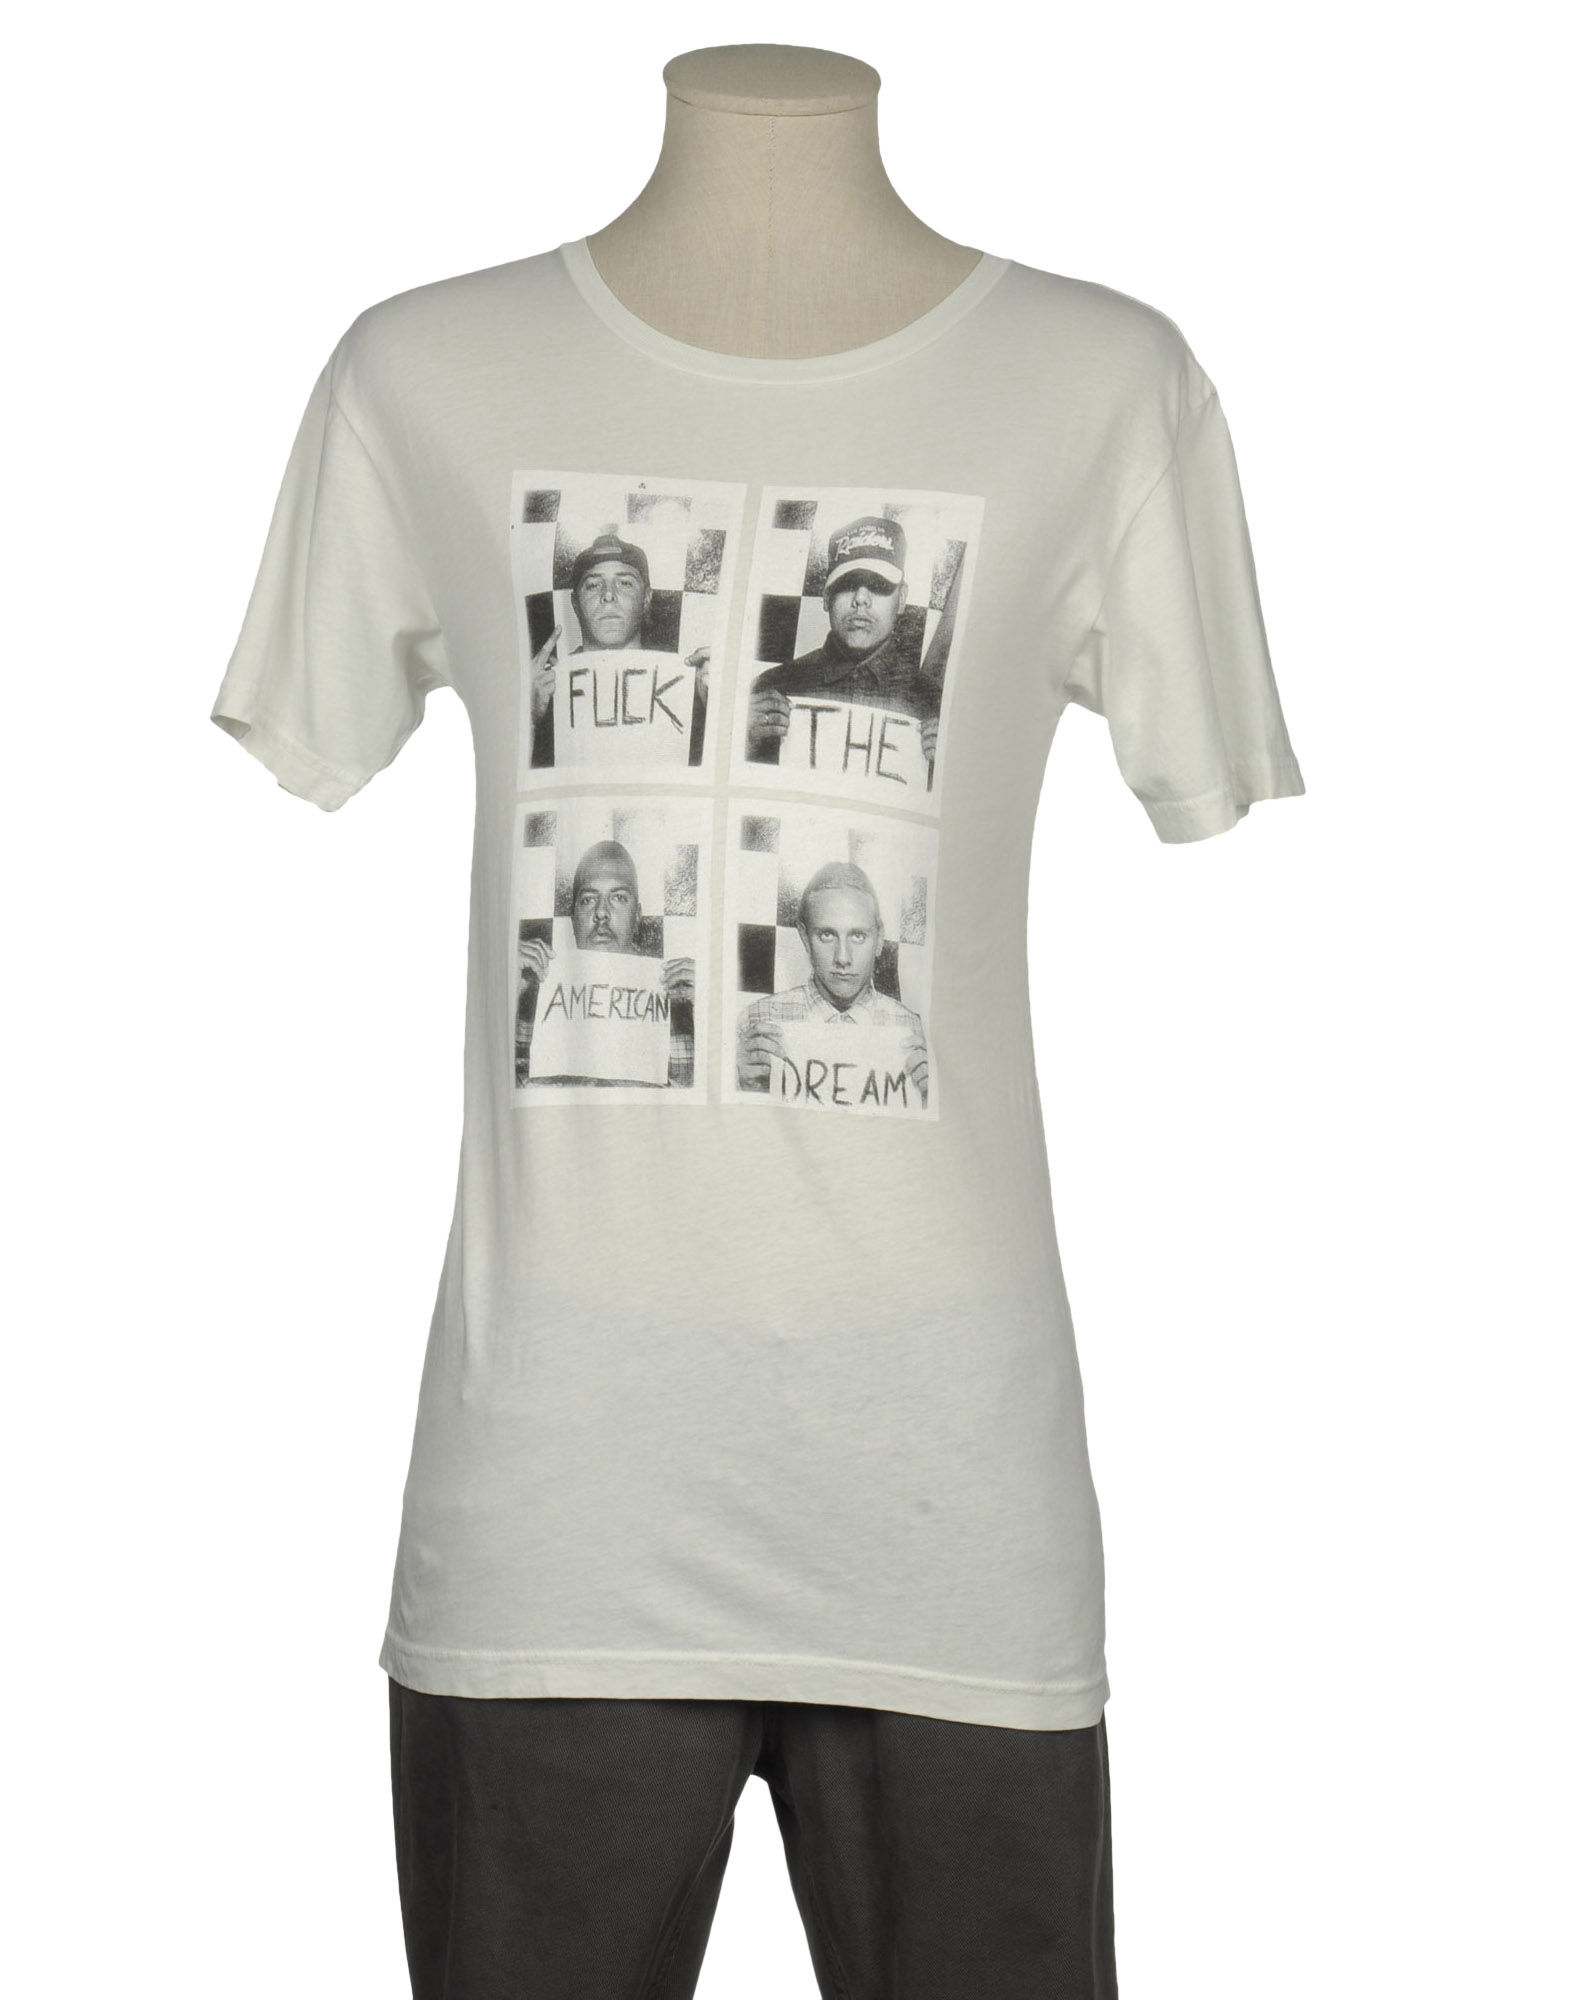 versace shirts for men 2013. versace shirts for men 2013 freshjive short sleeve t-shirt in white (